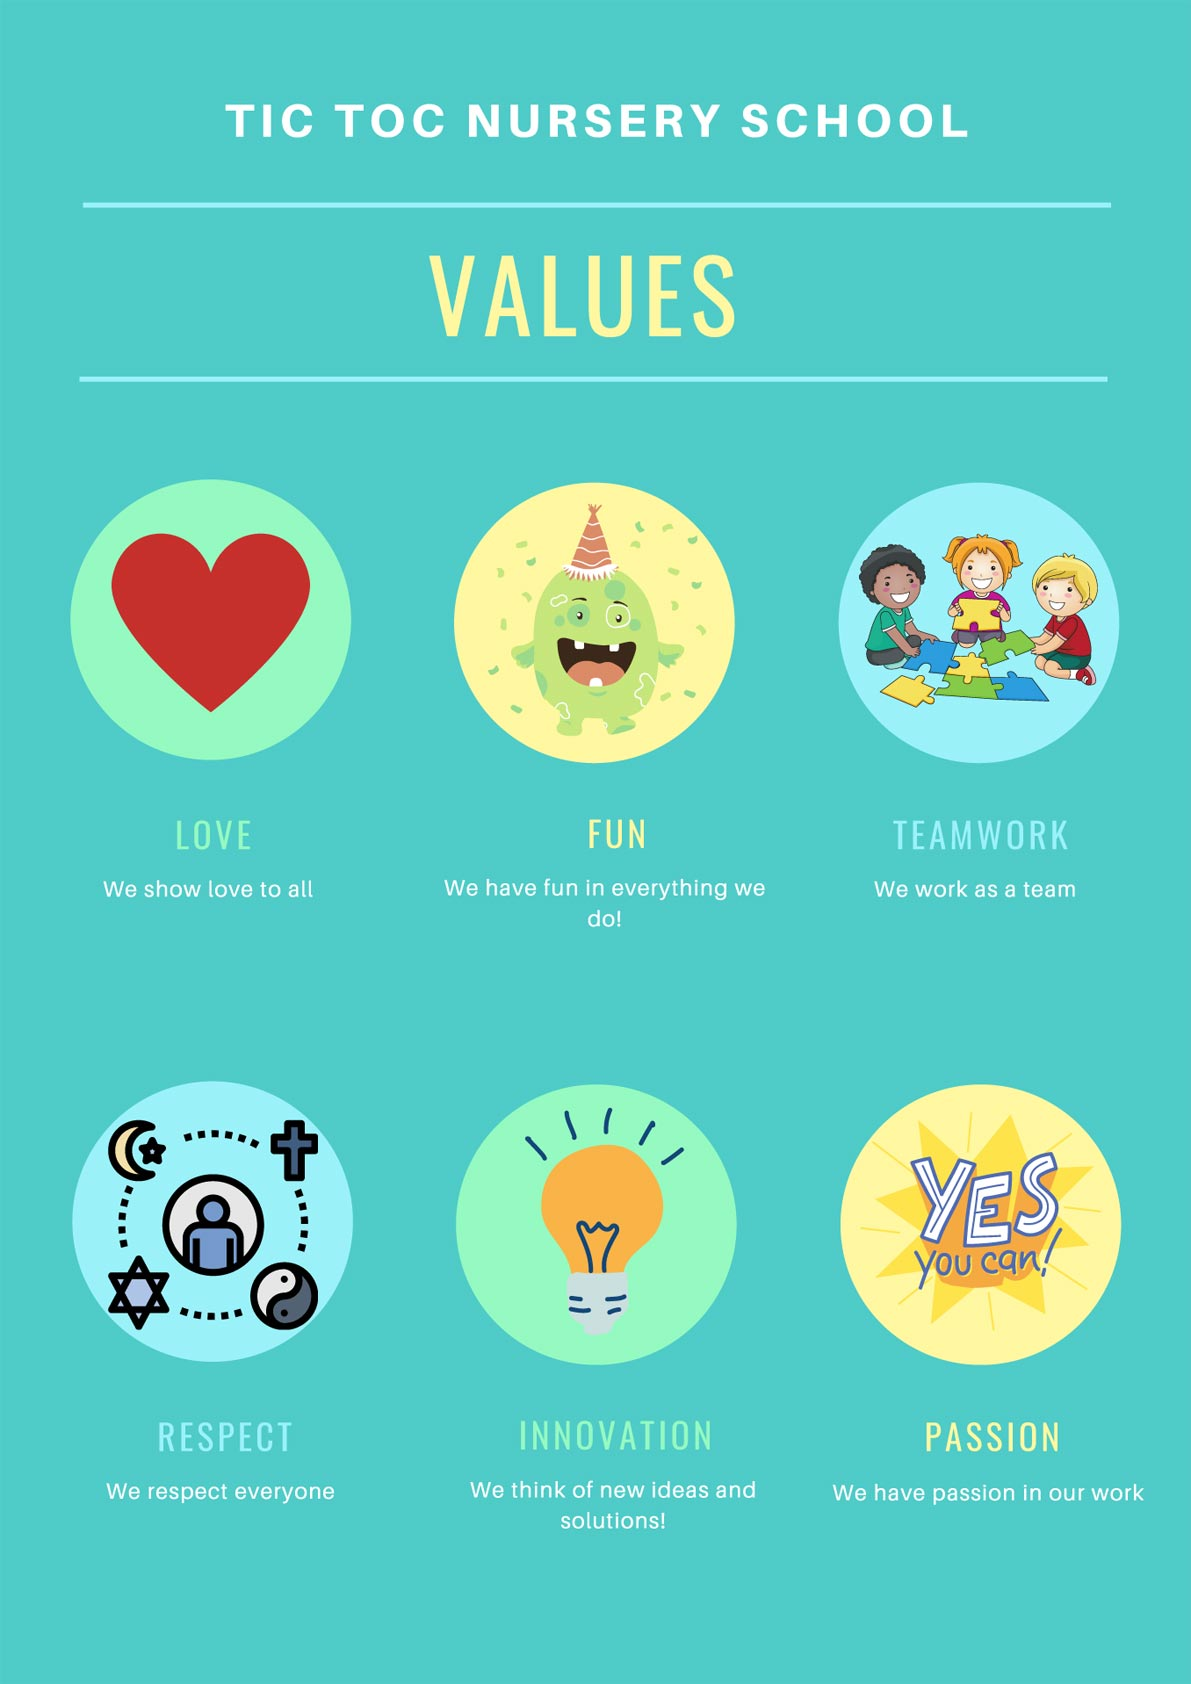 Tic Toc Nursery School's core values poster. We encourage love, respect, innovation, teamwork, passion & fun at the nursery.